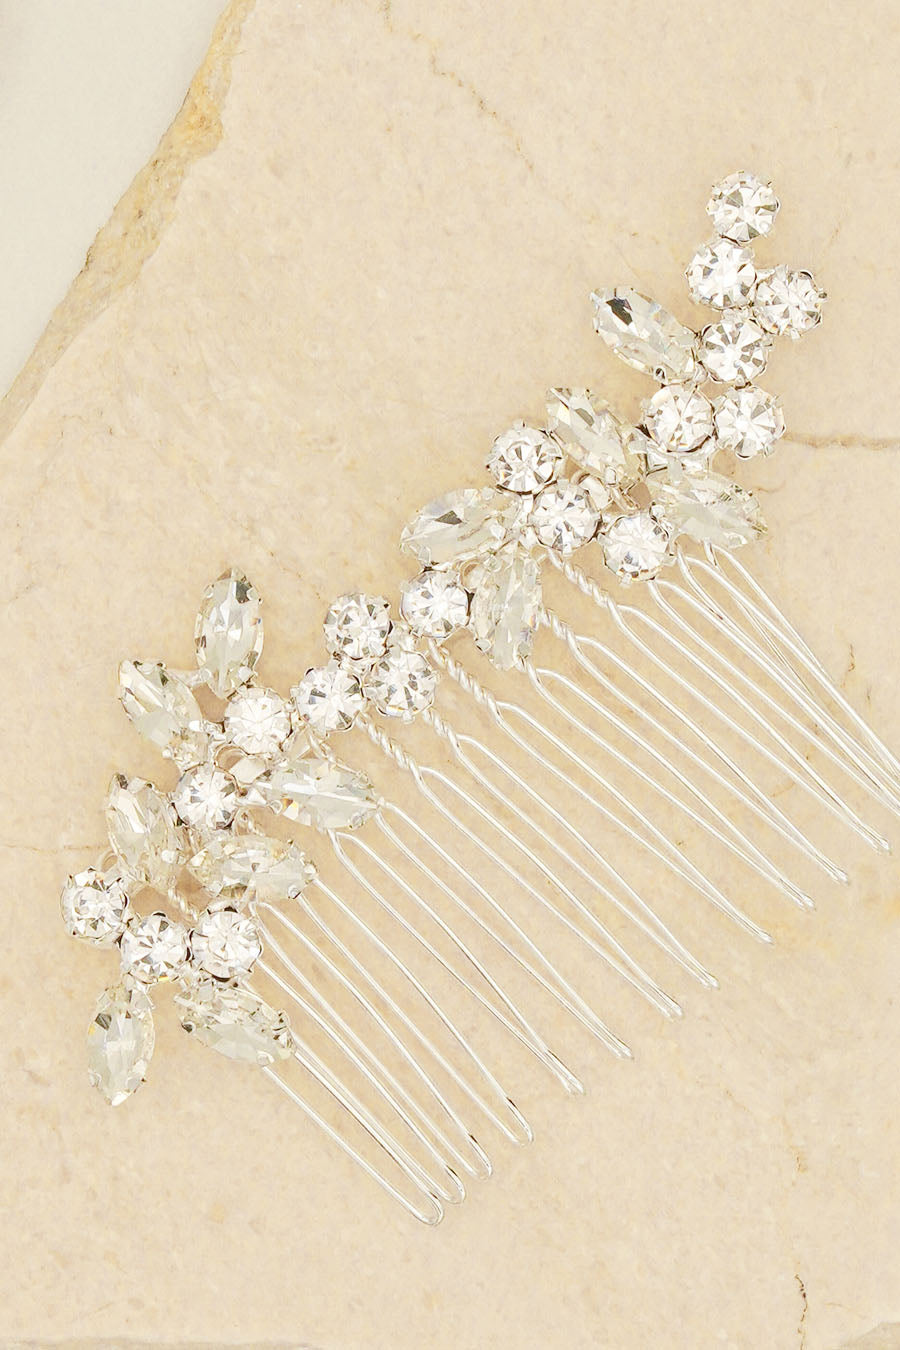 CLEAR DIAMANTE AND TWIST RHINESTONES BRIDAL HAIR ACCESSORIES HAIR CLIP BY NARIANNA